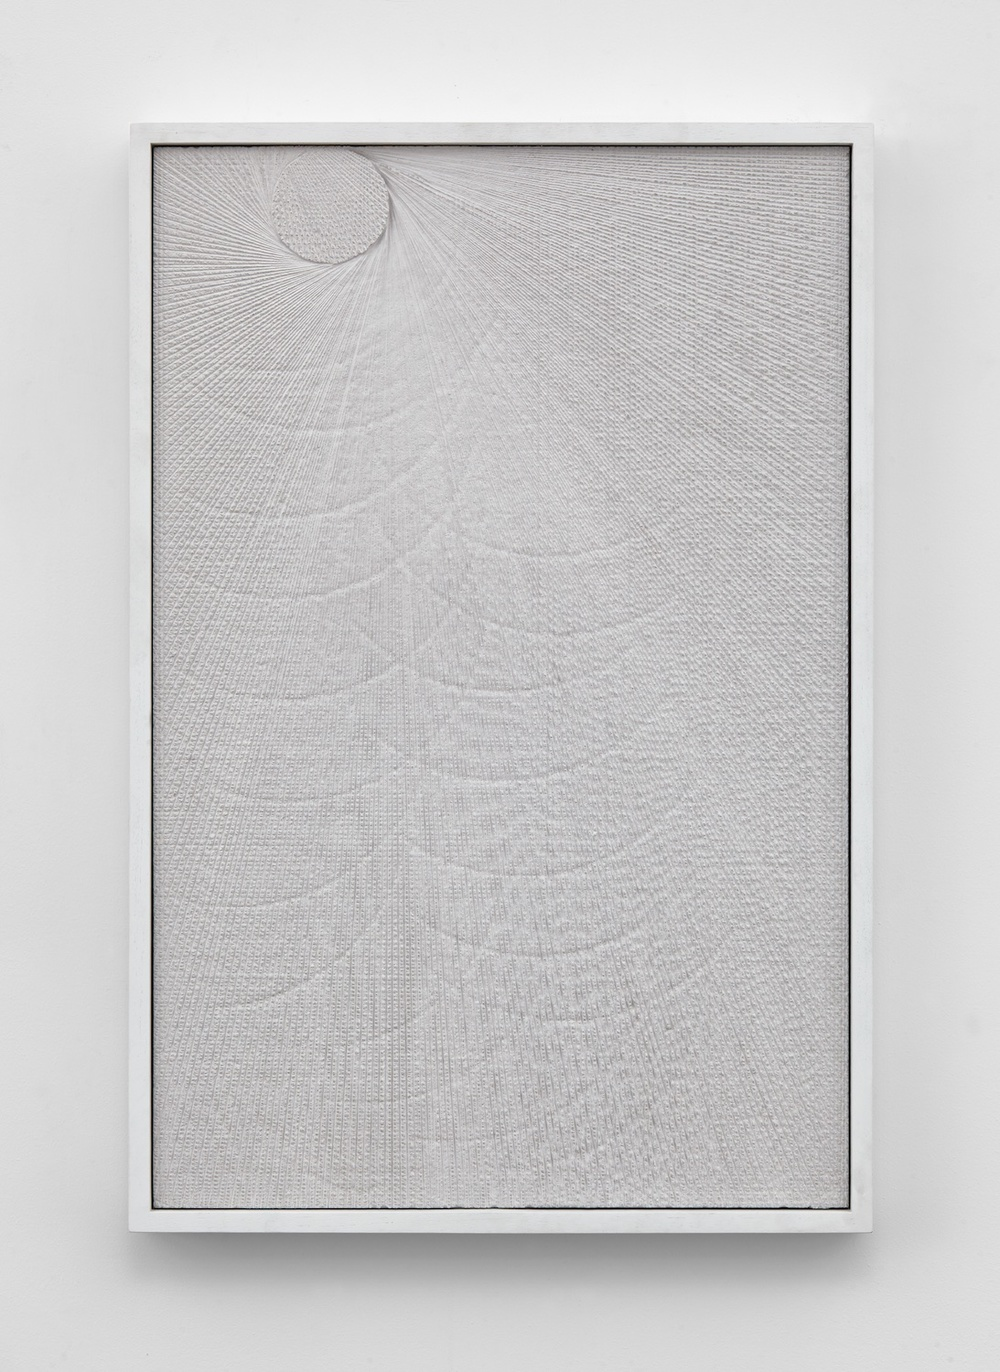 "Anthony Pearson Untitled (Etched Plaster) 2015 Pigmented hydrocal in lacquer painted walnut frame 30 ½"" x 20 ½"" x 2 ¼"" AP370"